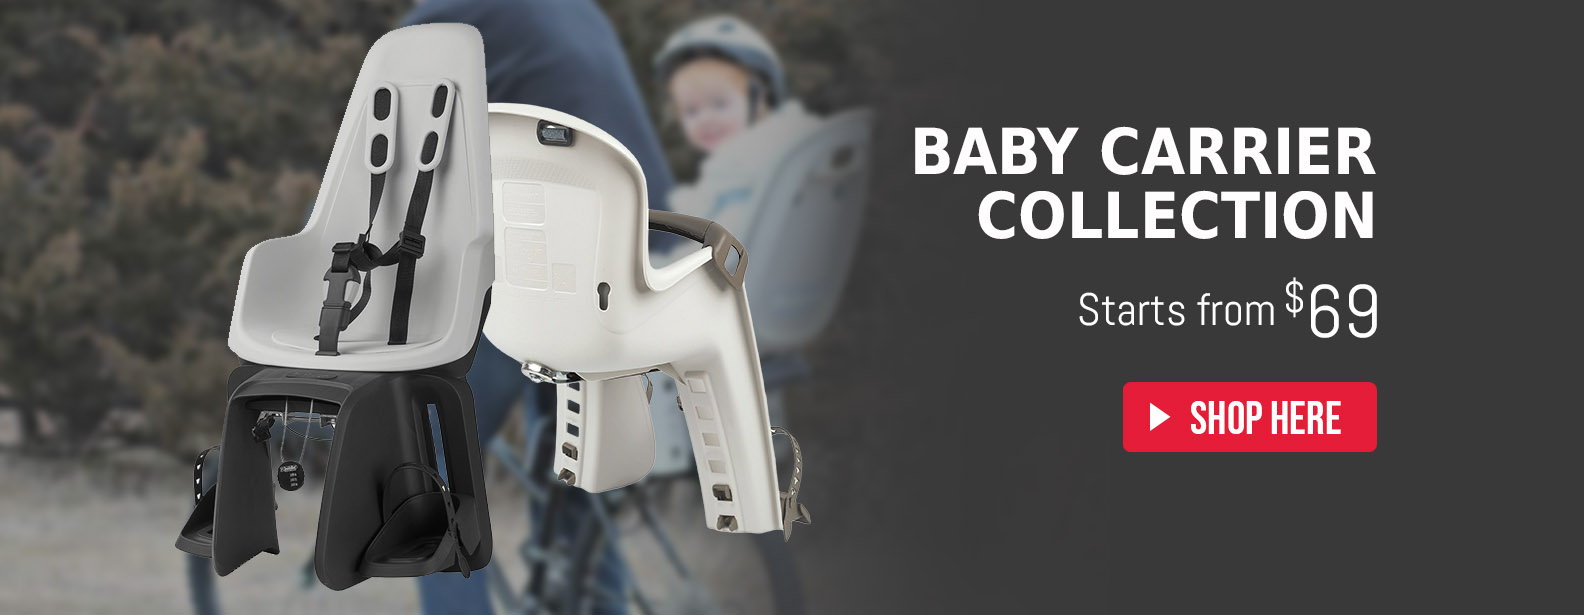 Buy Baby Carrier Collection